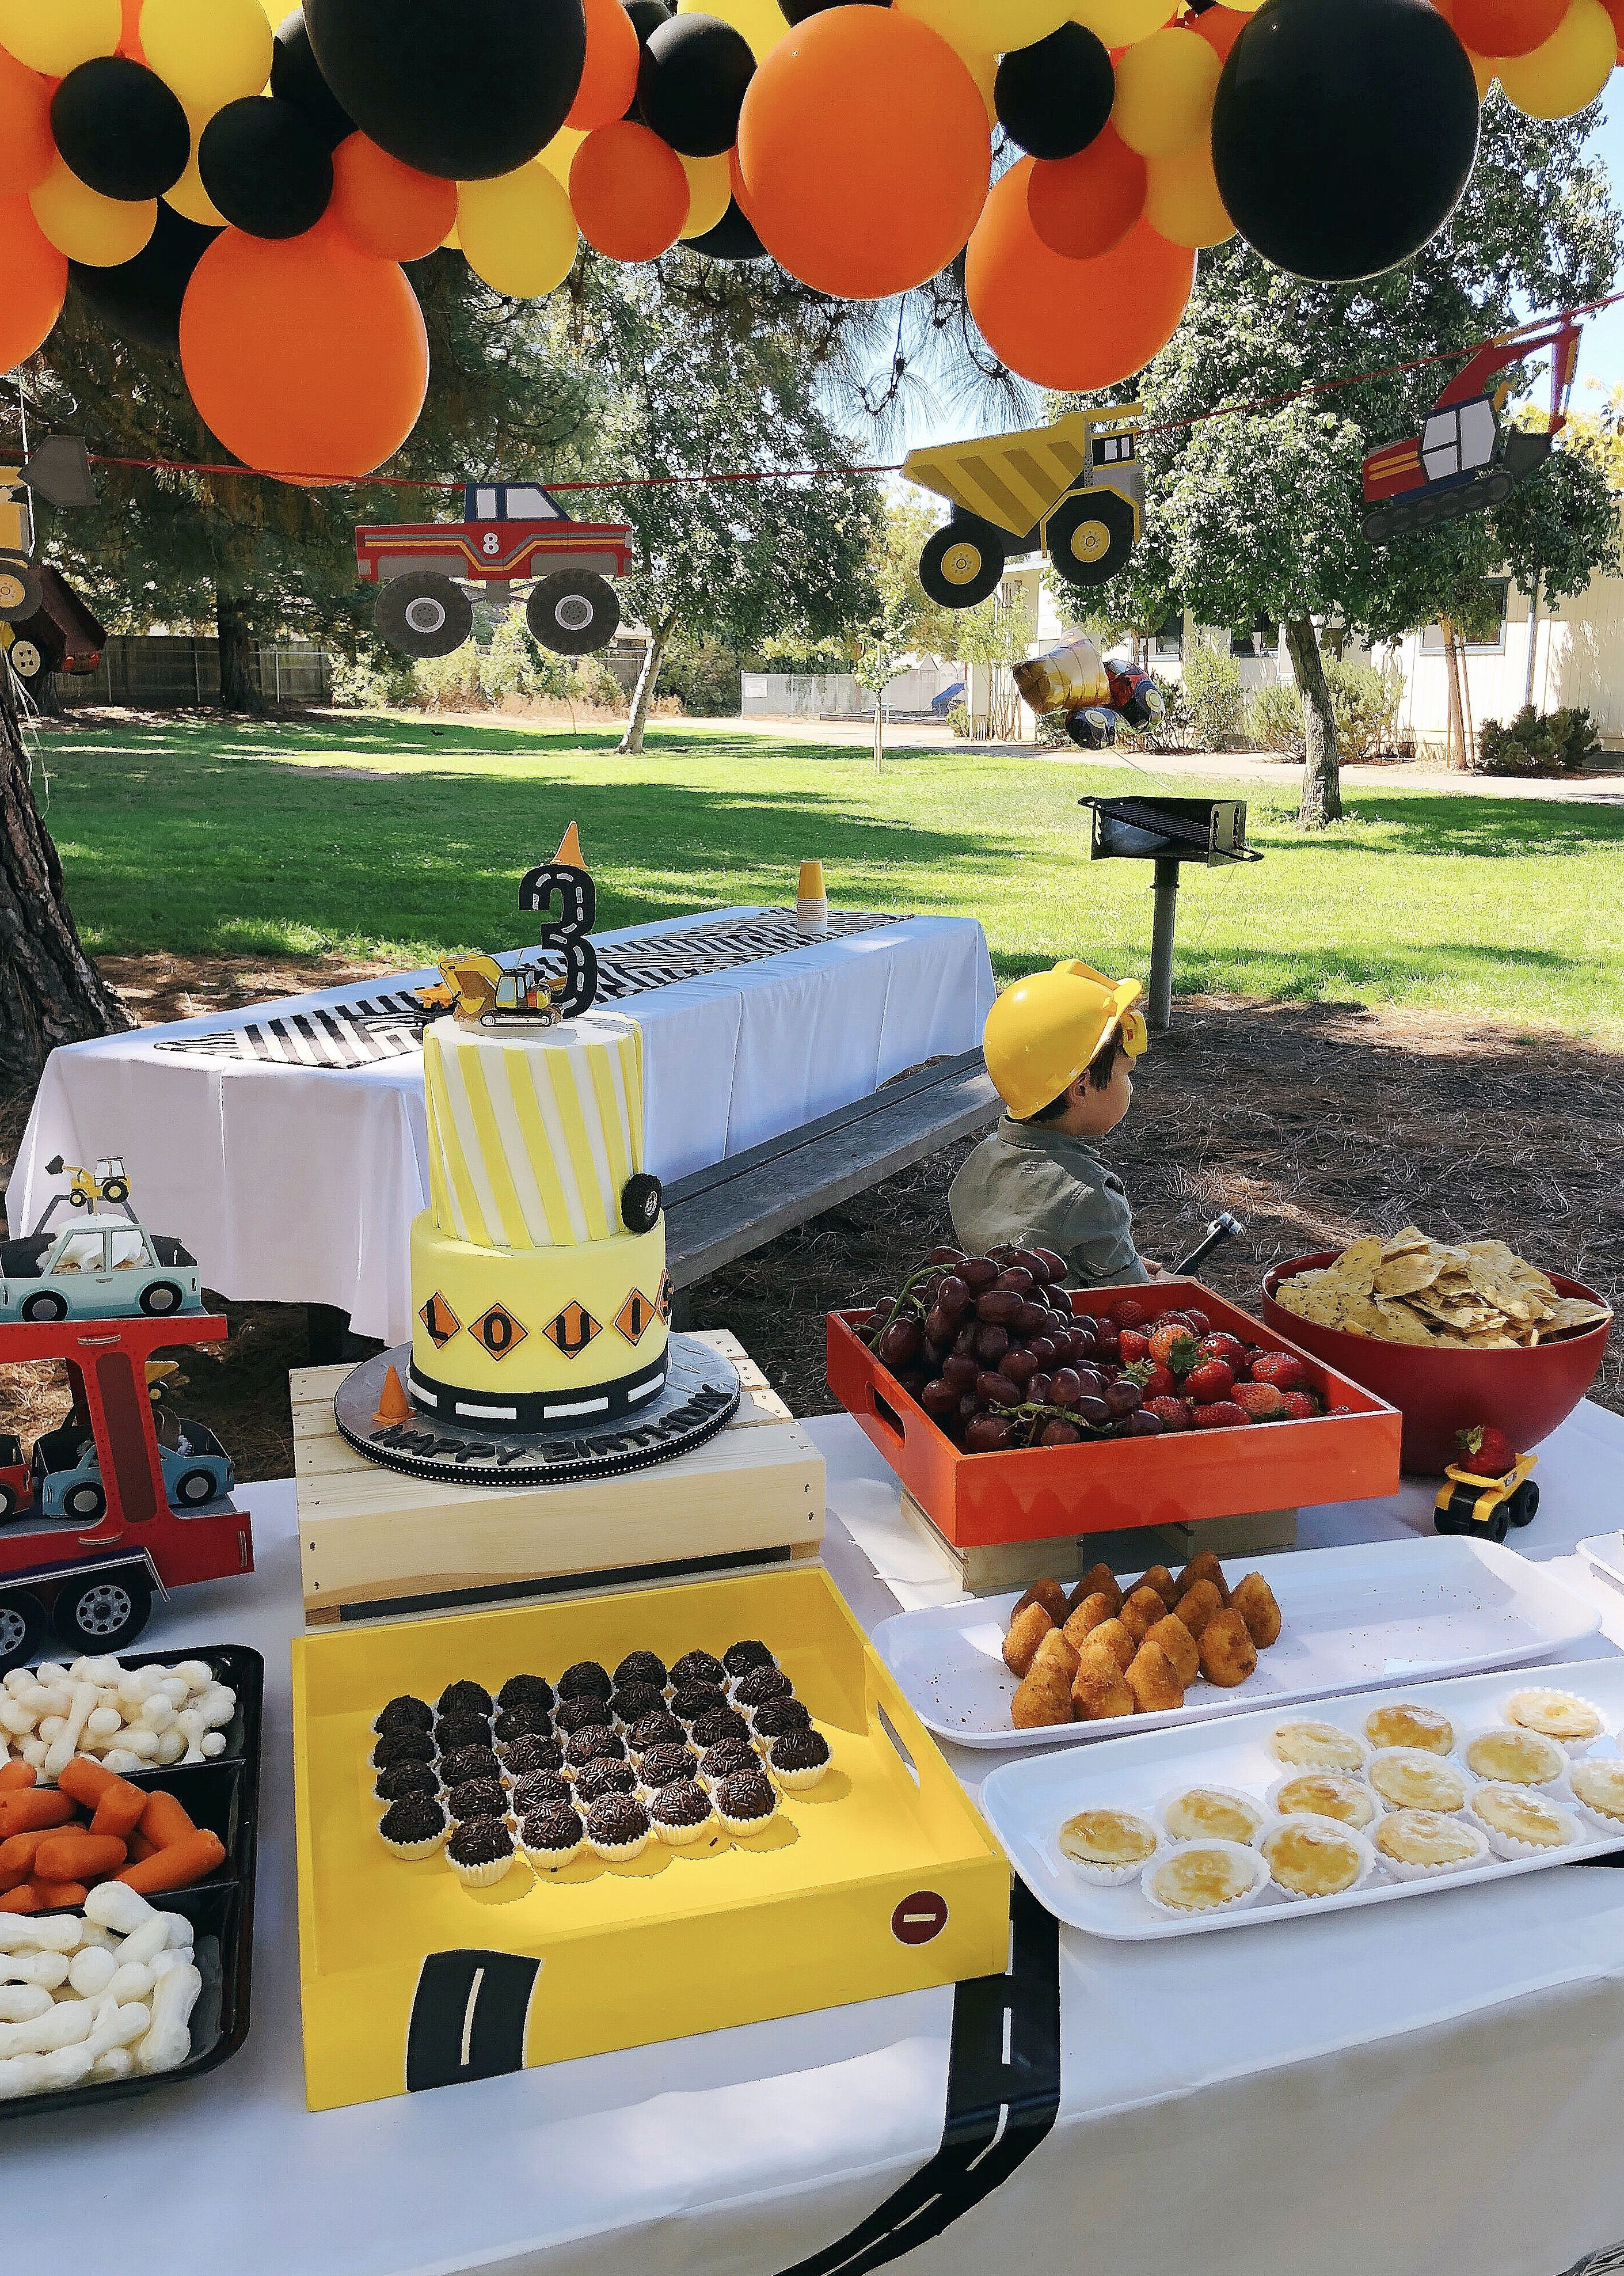 Construction Birthday Party Ideas In 2021 Construction Birthday Construction Theme Birthday Party Construction Birthday Parties